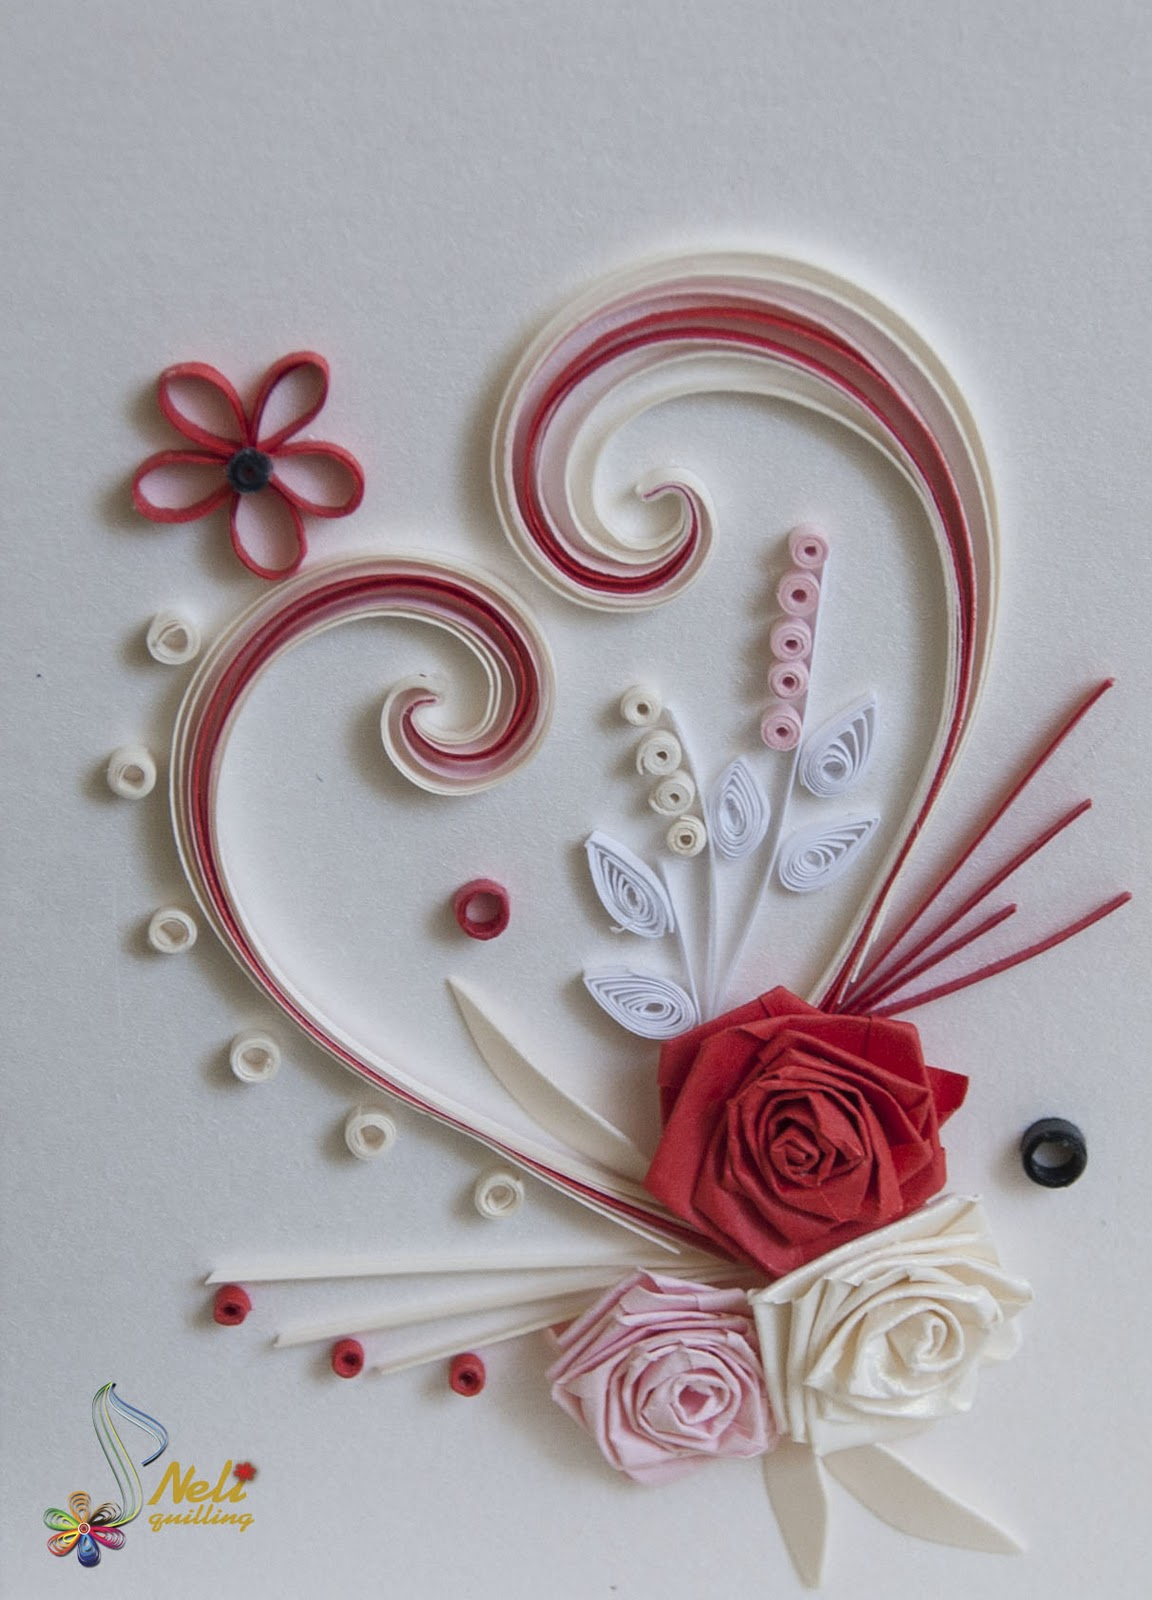 Neli quilling art quilling cards with love for Quilling paper art